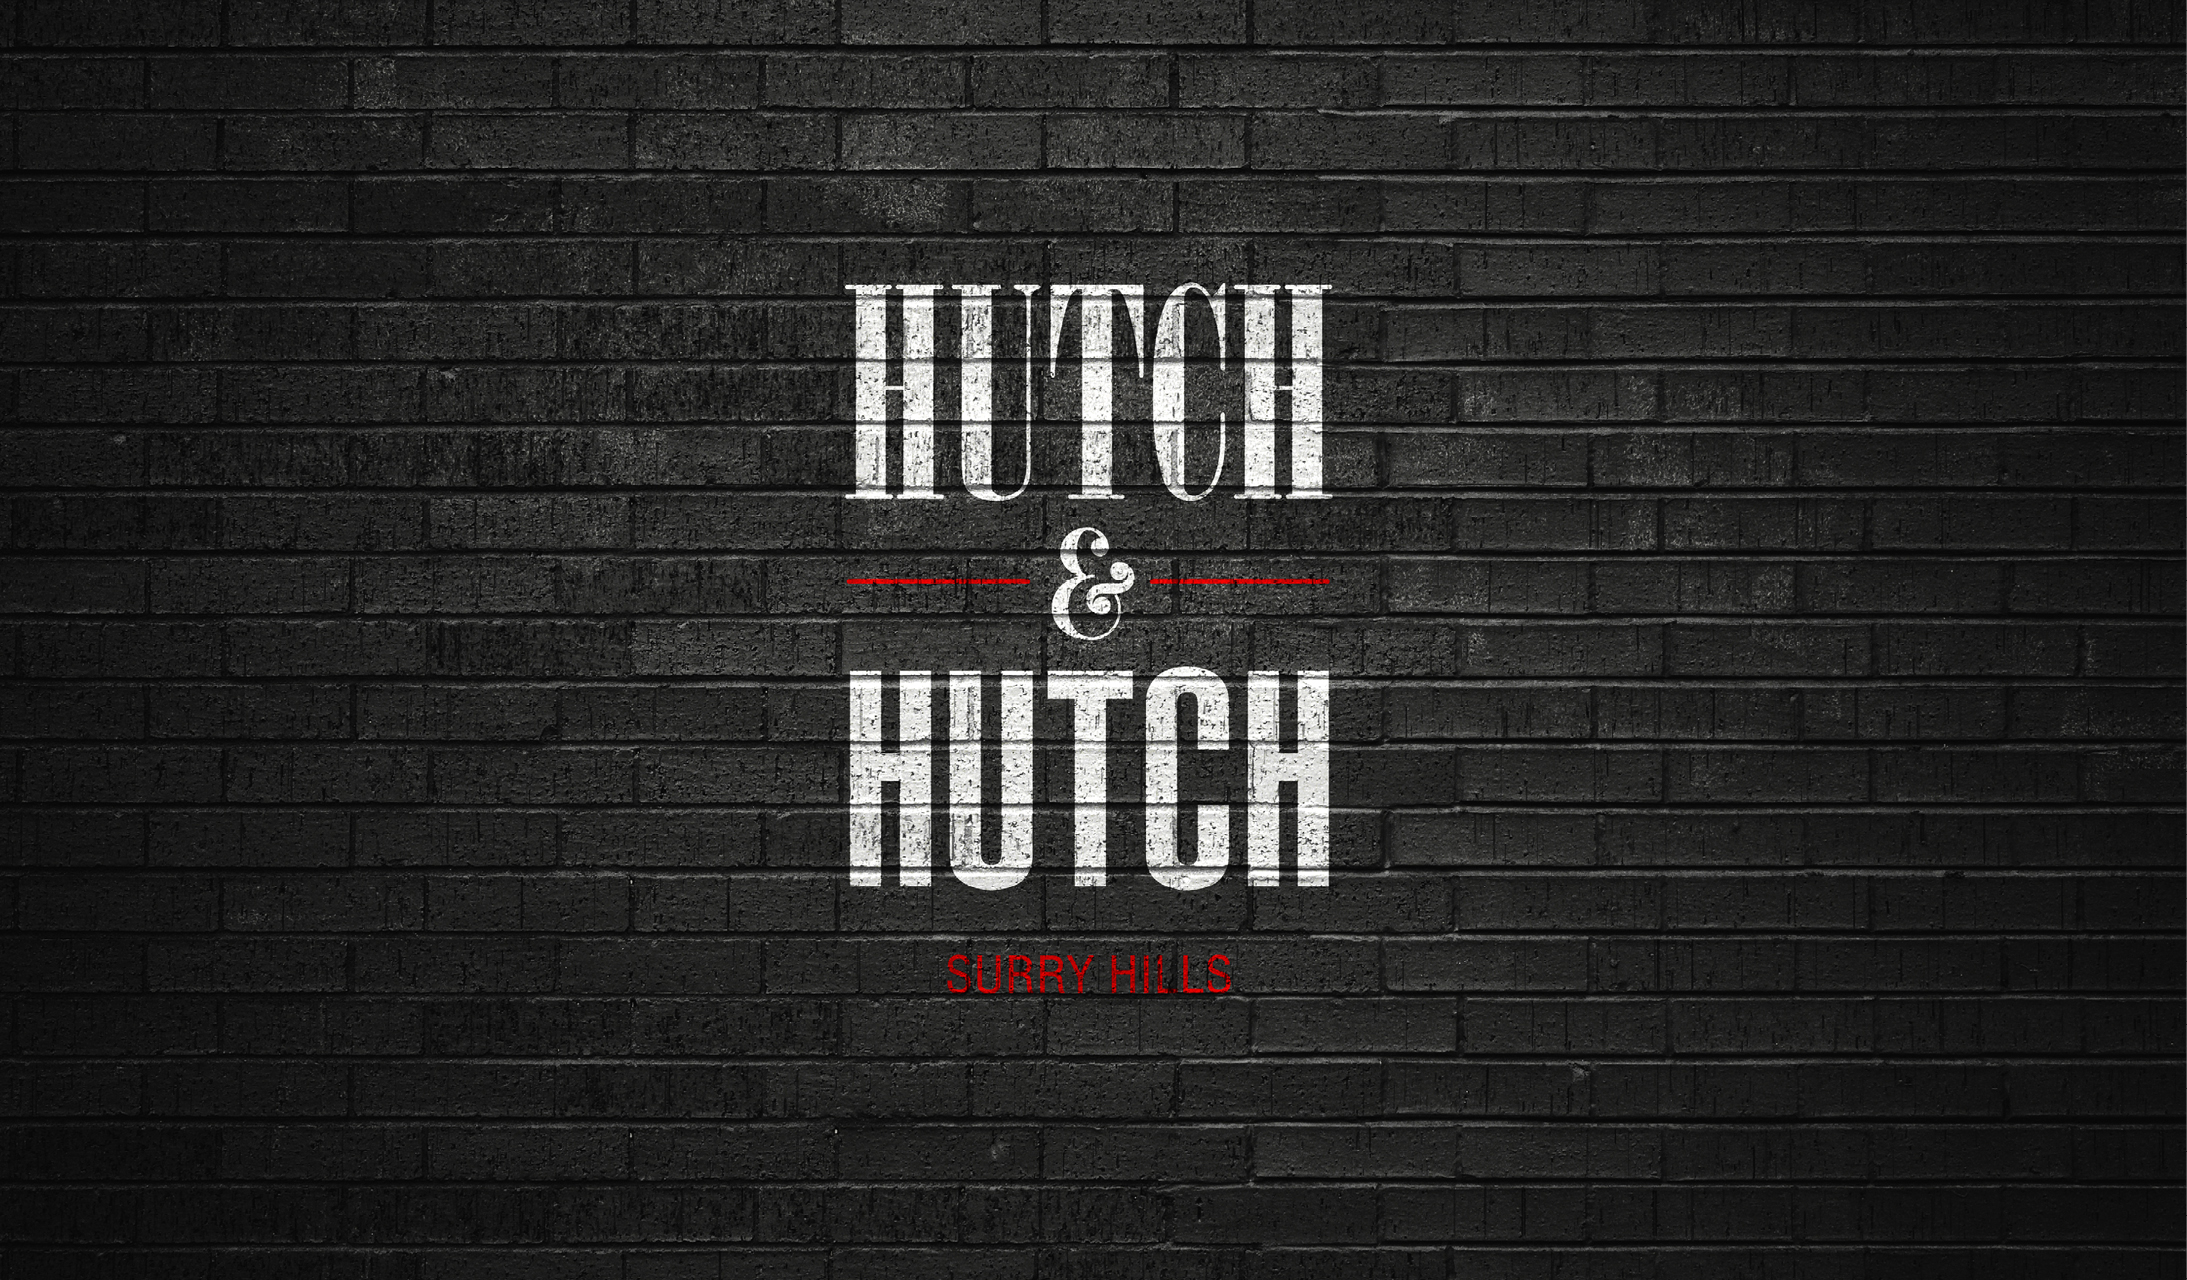 BridgeLane – Hutch & Hutch